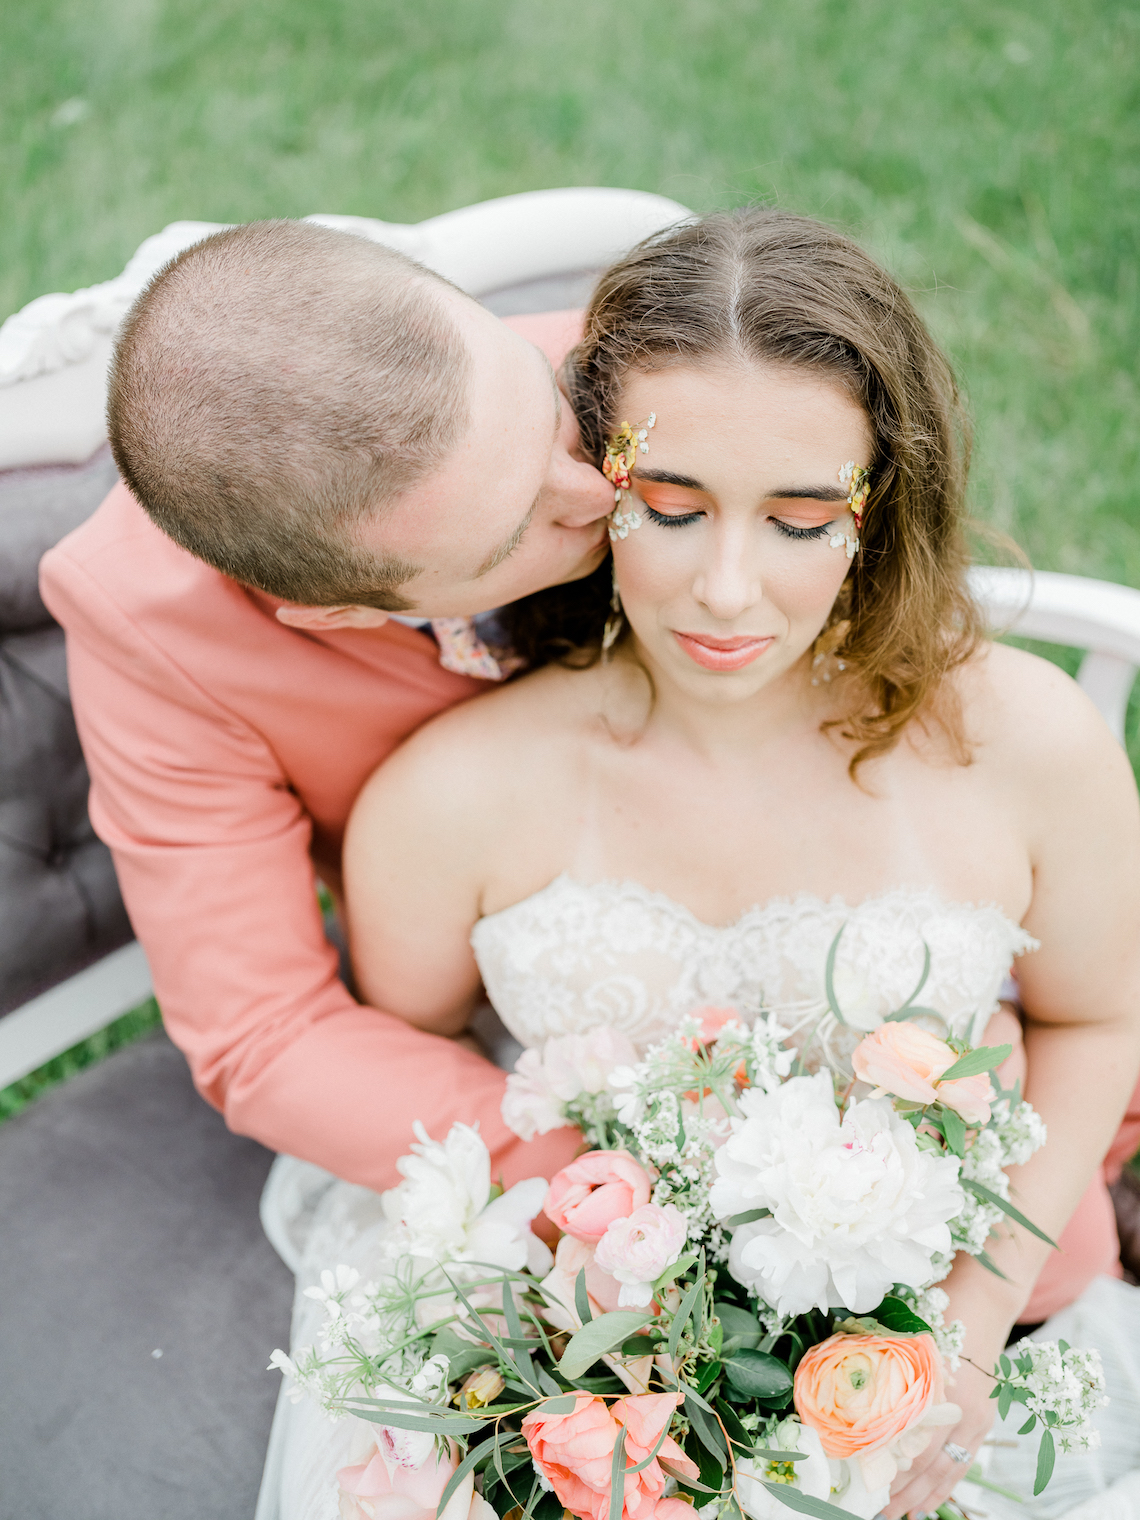 Whimsical Pantone Living Coral Colorful Meadow Wedding Inspiration – Kira Nicole Photography 39